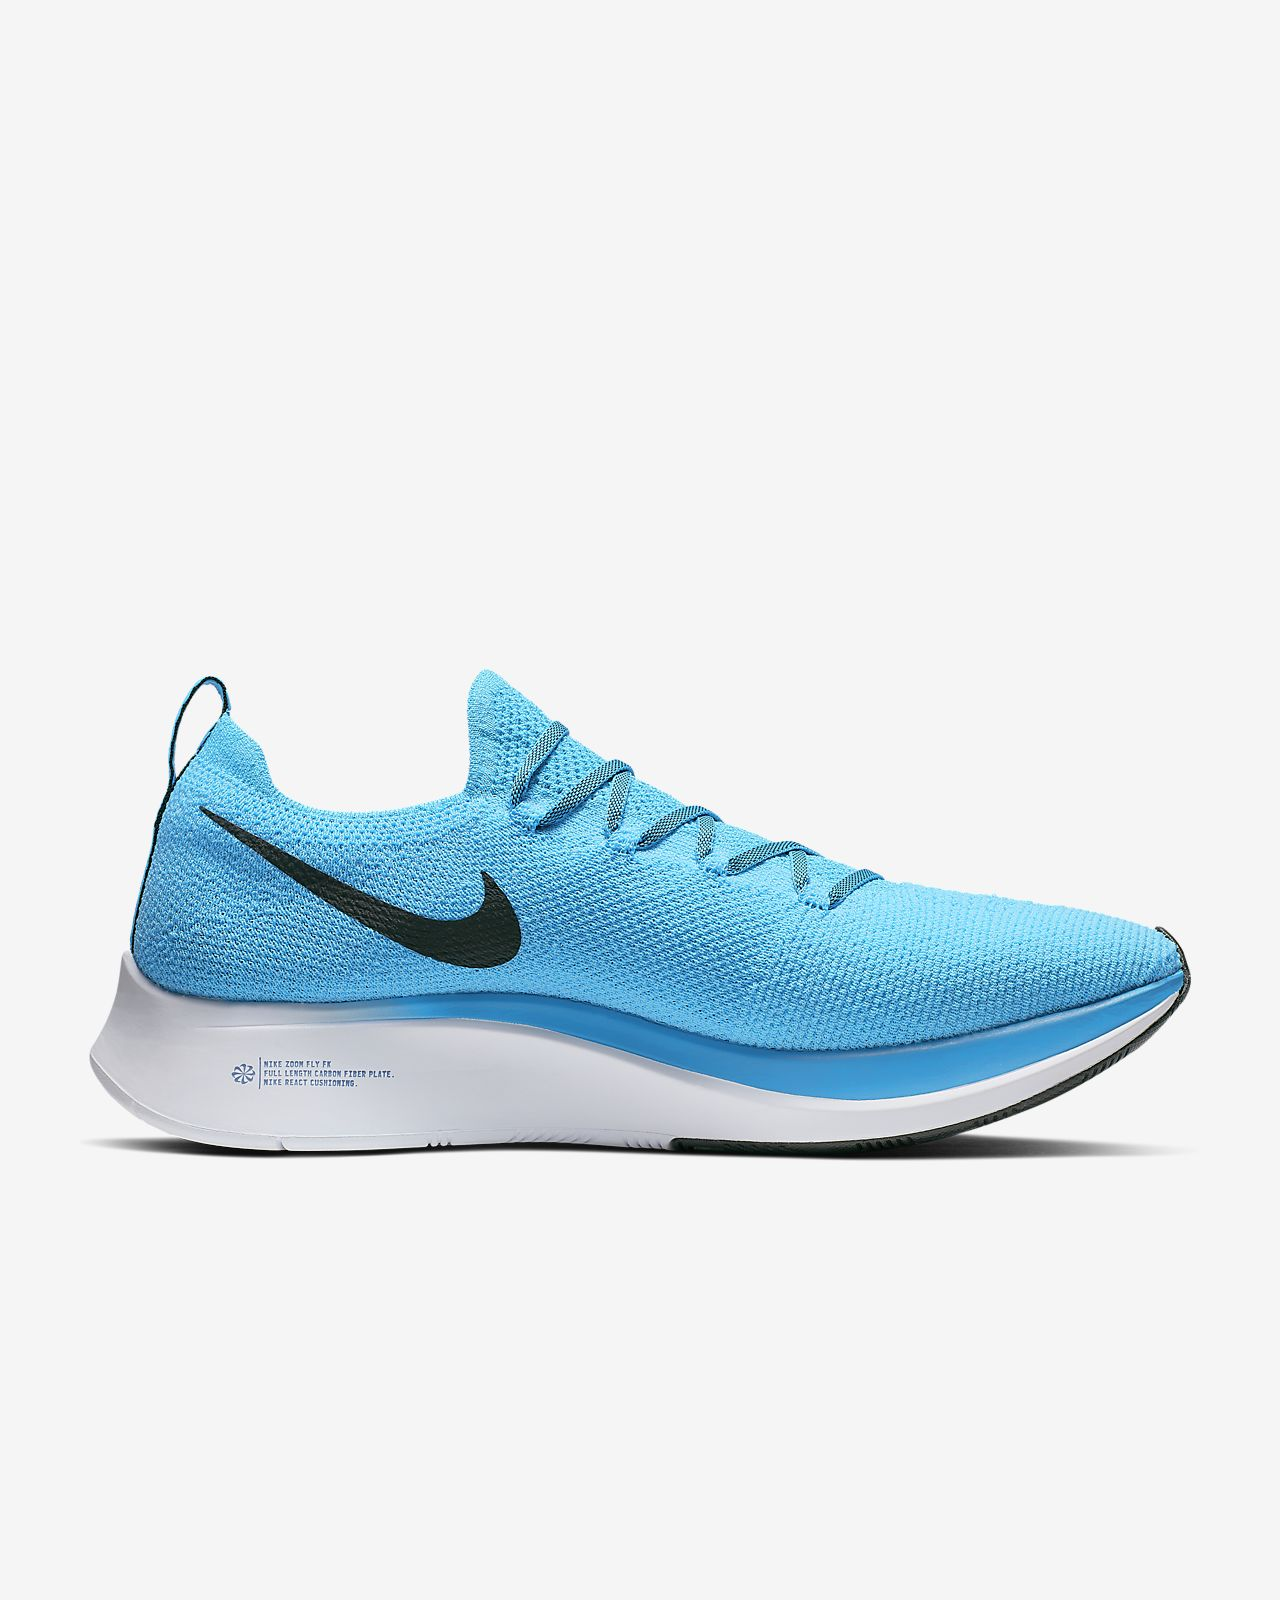 sports shoes ee1da 4e8df Low Resolution Chaussure de running Nike Zoom Fly Flyknit pour Homme  Chaussure de running Nike Zoom Fly Flyknit pour Homme